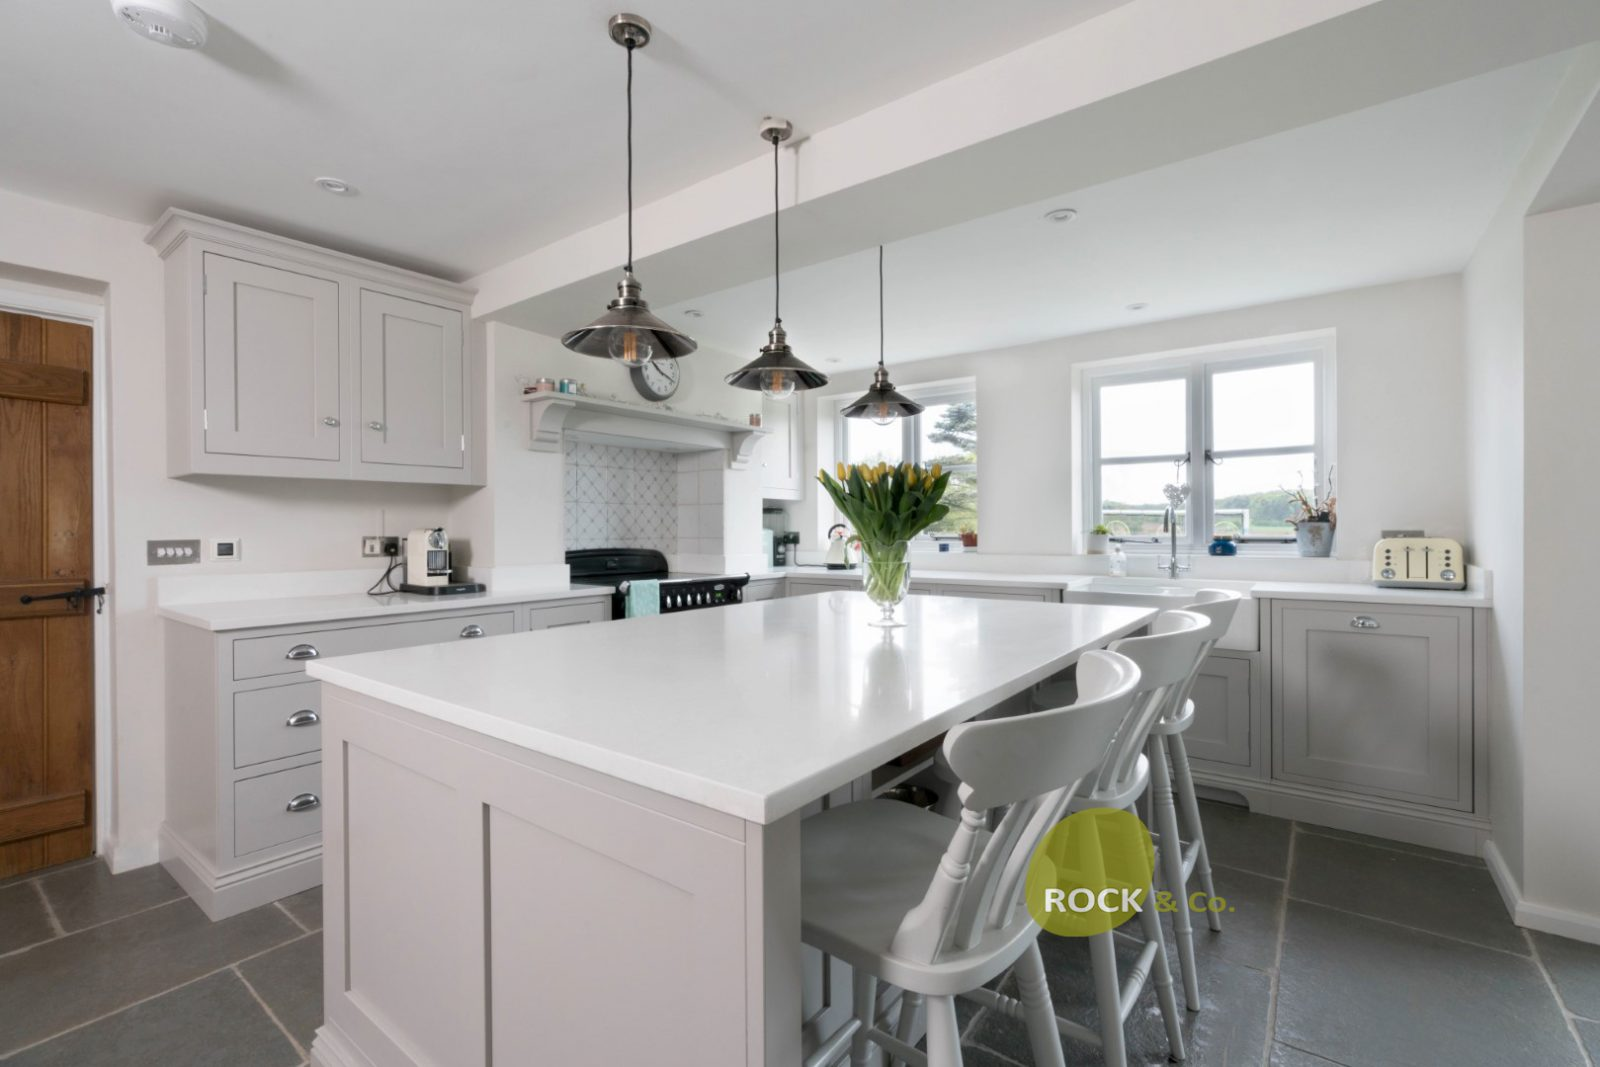 Kitchen of the week… Located in Albury, Herts, showcasing the Bianco Marmo Suprema